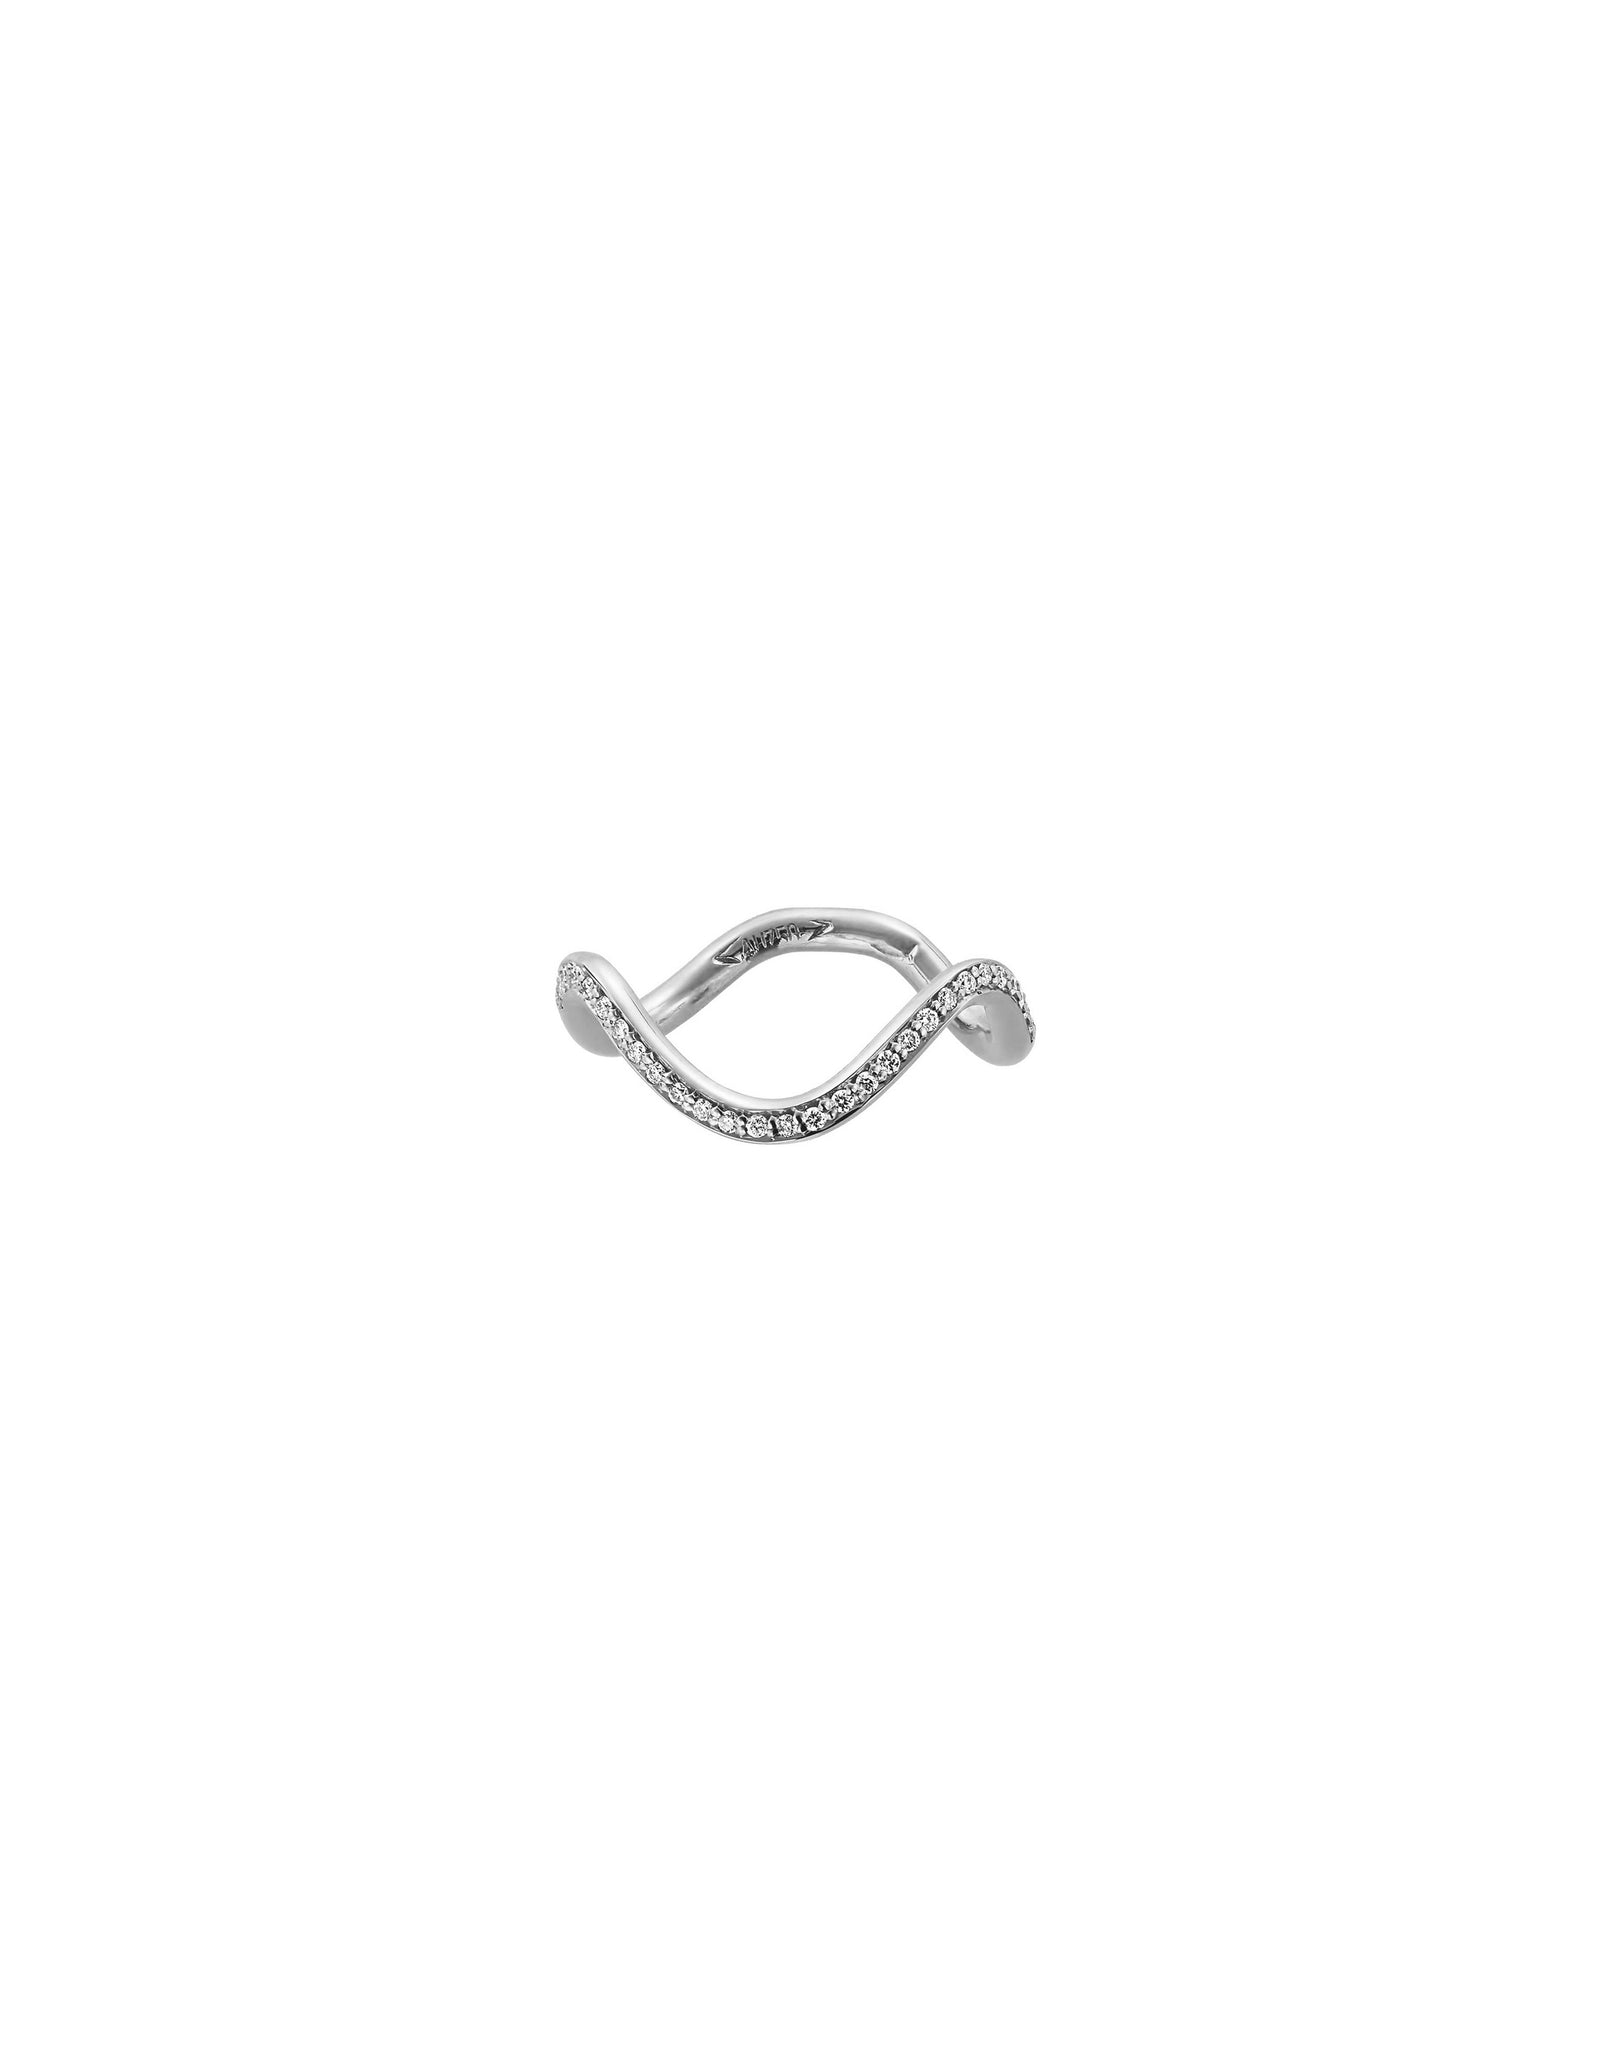 Ring 18K gold diamonds knuckle - Petite comete knuckle ring diamonds - Nayestones